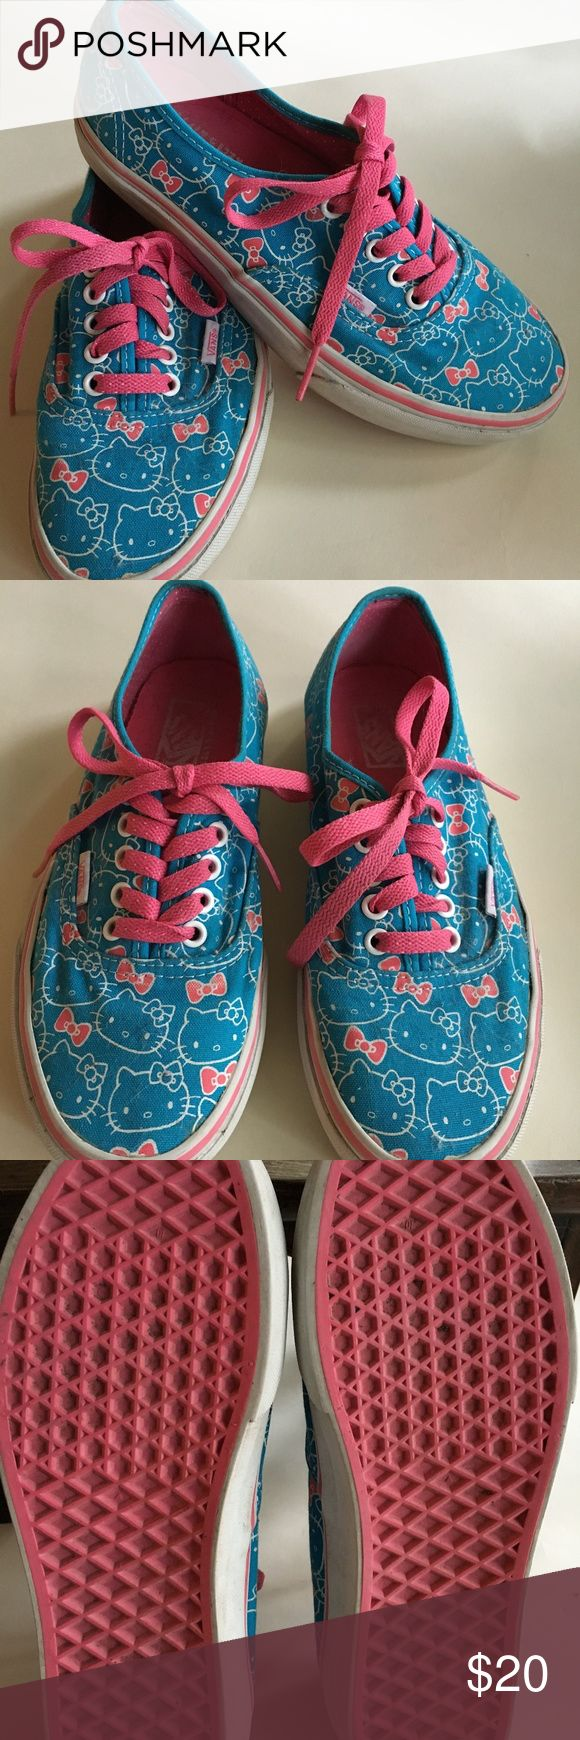 Pre-Owned VANS Hello Kitty Women Size 8 Vans Hello Kitty lace-up sneakers women's size 8.  Cute blue and pink hello kitty print. In good pre-owned condition. Vans Shoes Sneakers